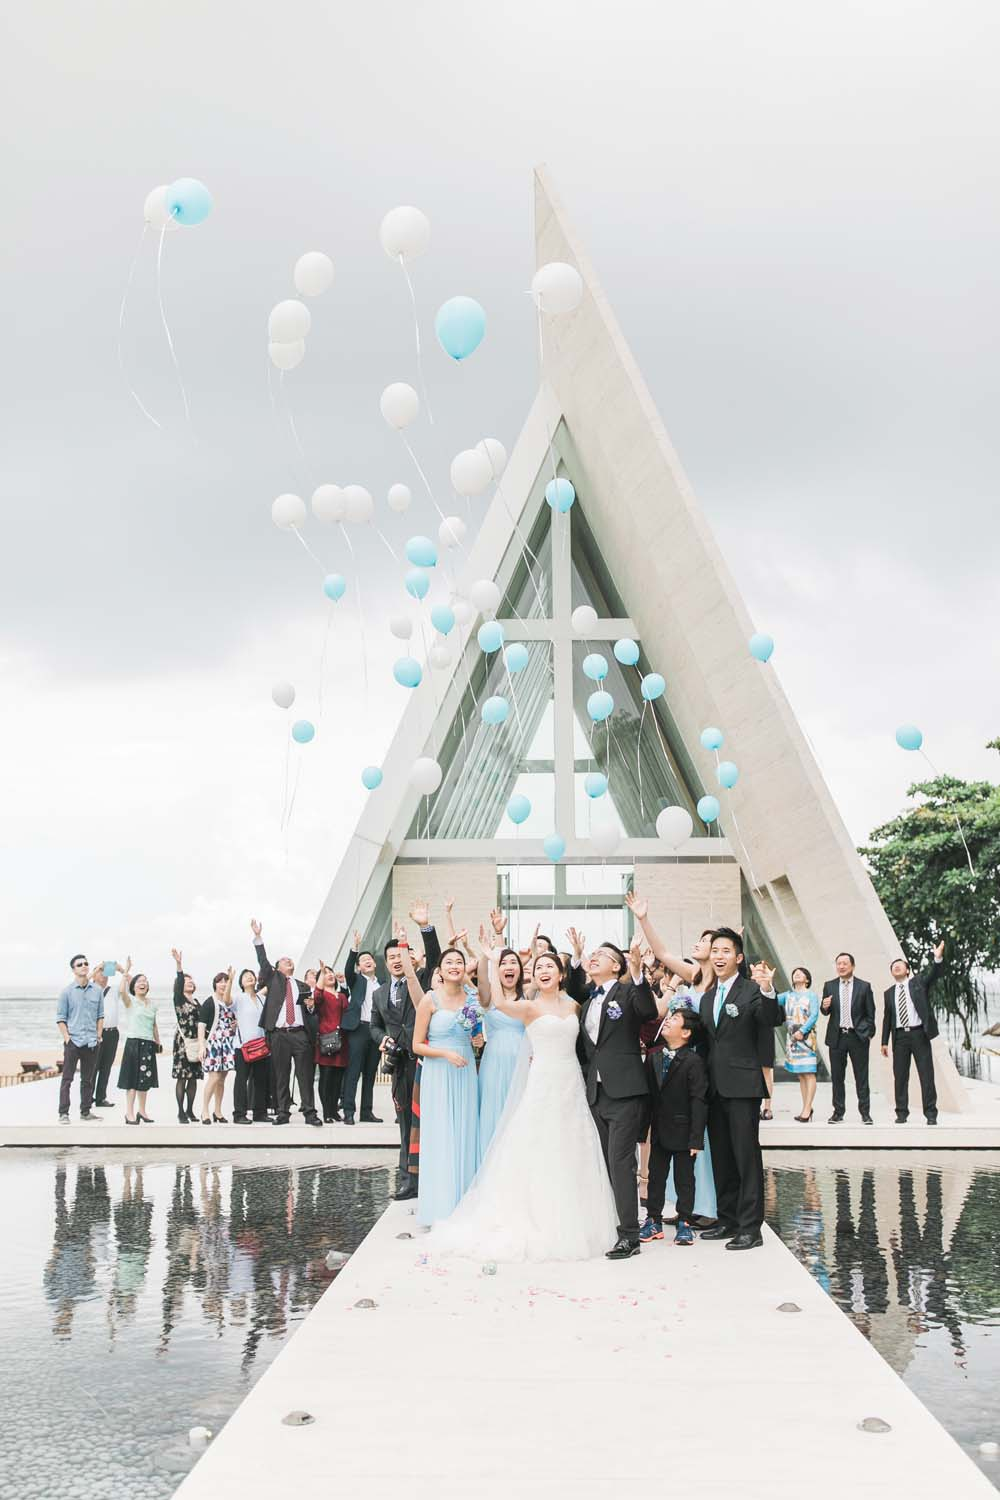 a dreamy destination wedding in bali - bride and groom with wedding party